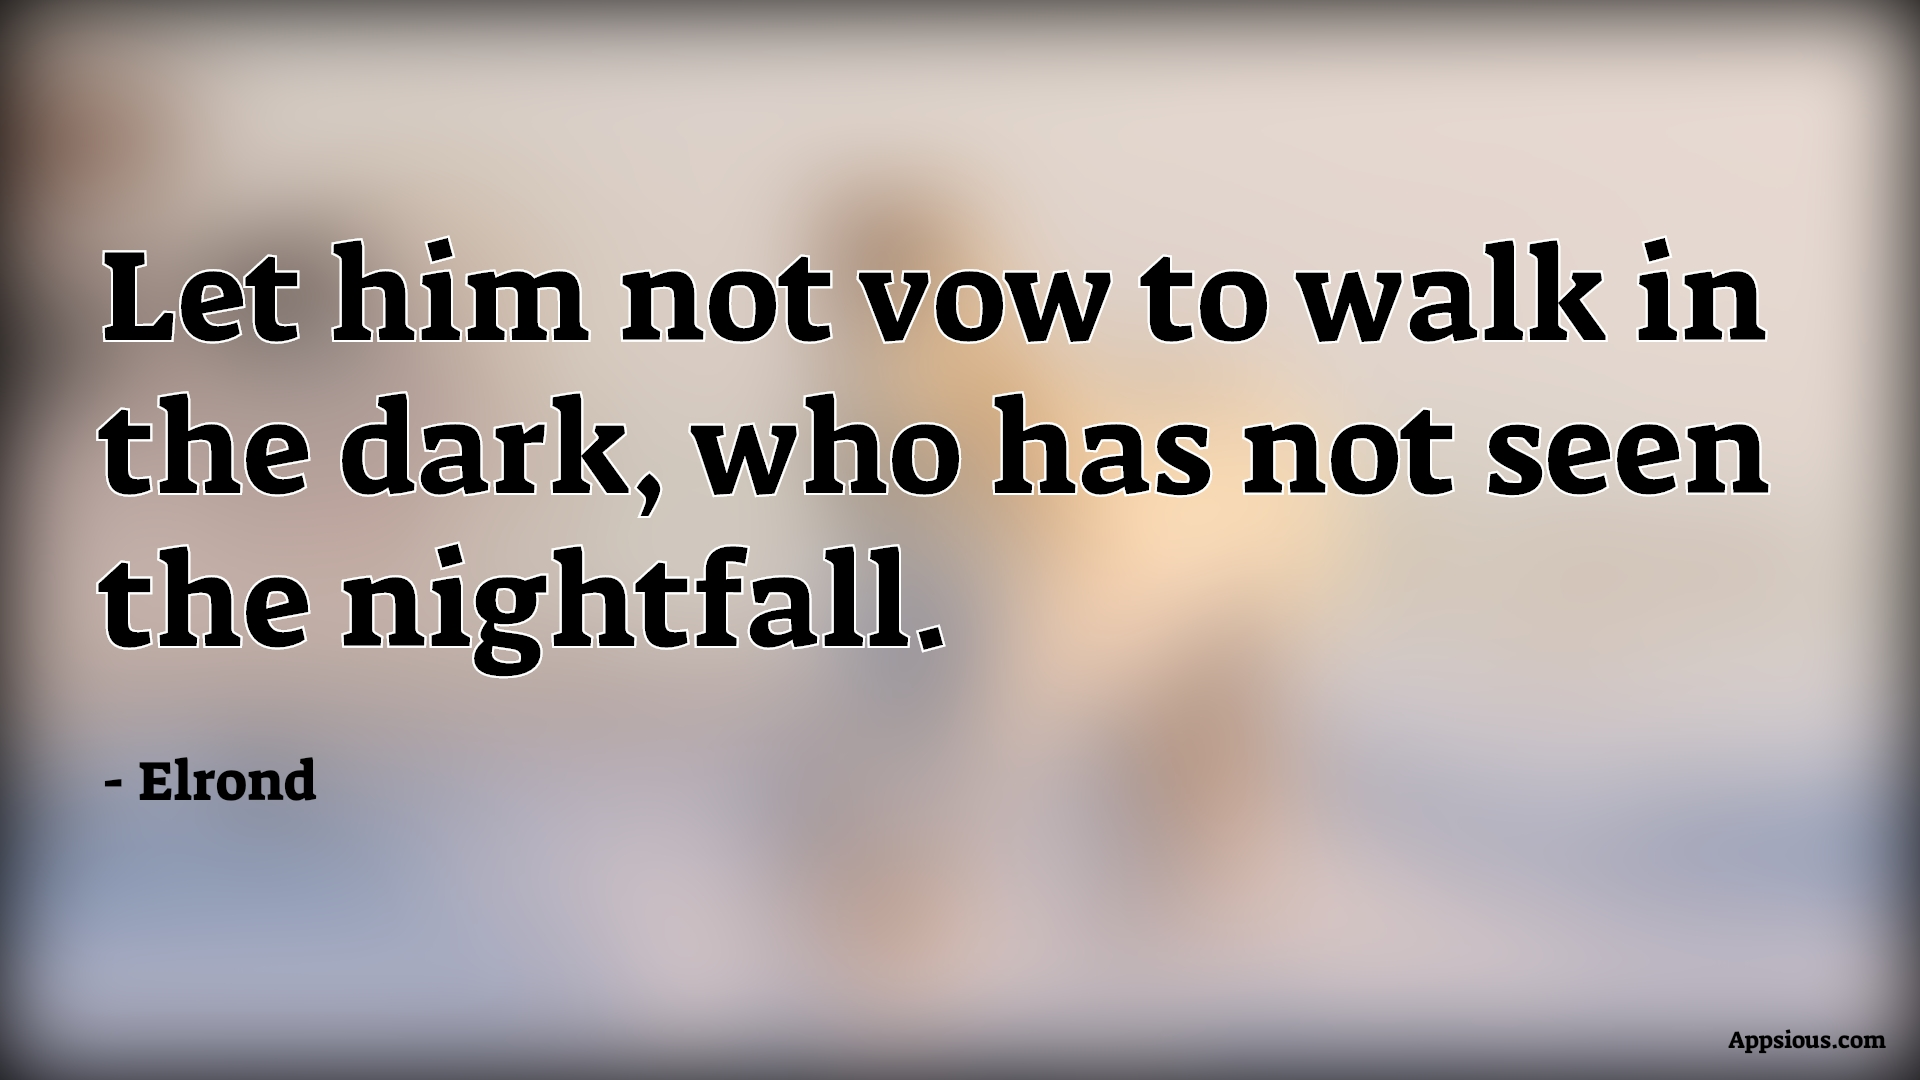 Let him not vow to walk in the dark, who has not seen the nightfall.